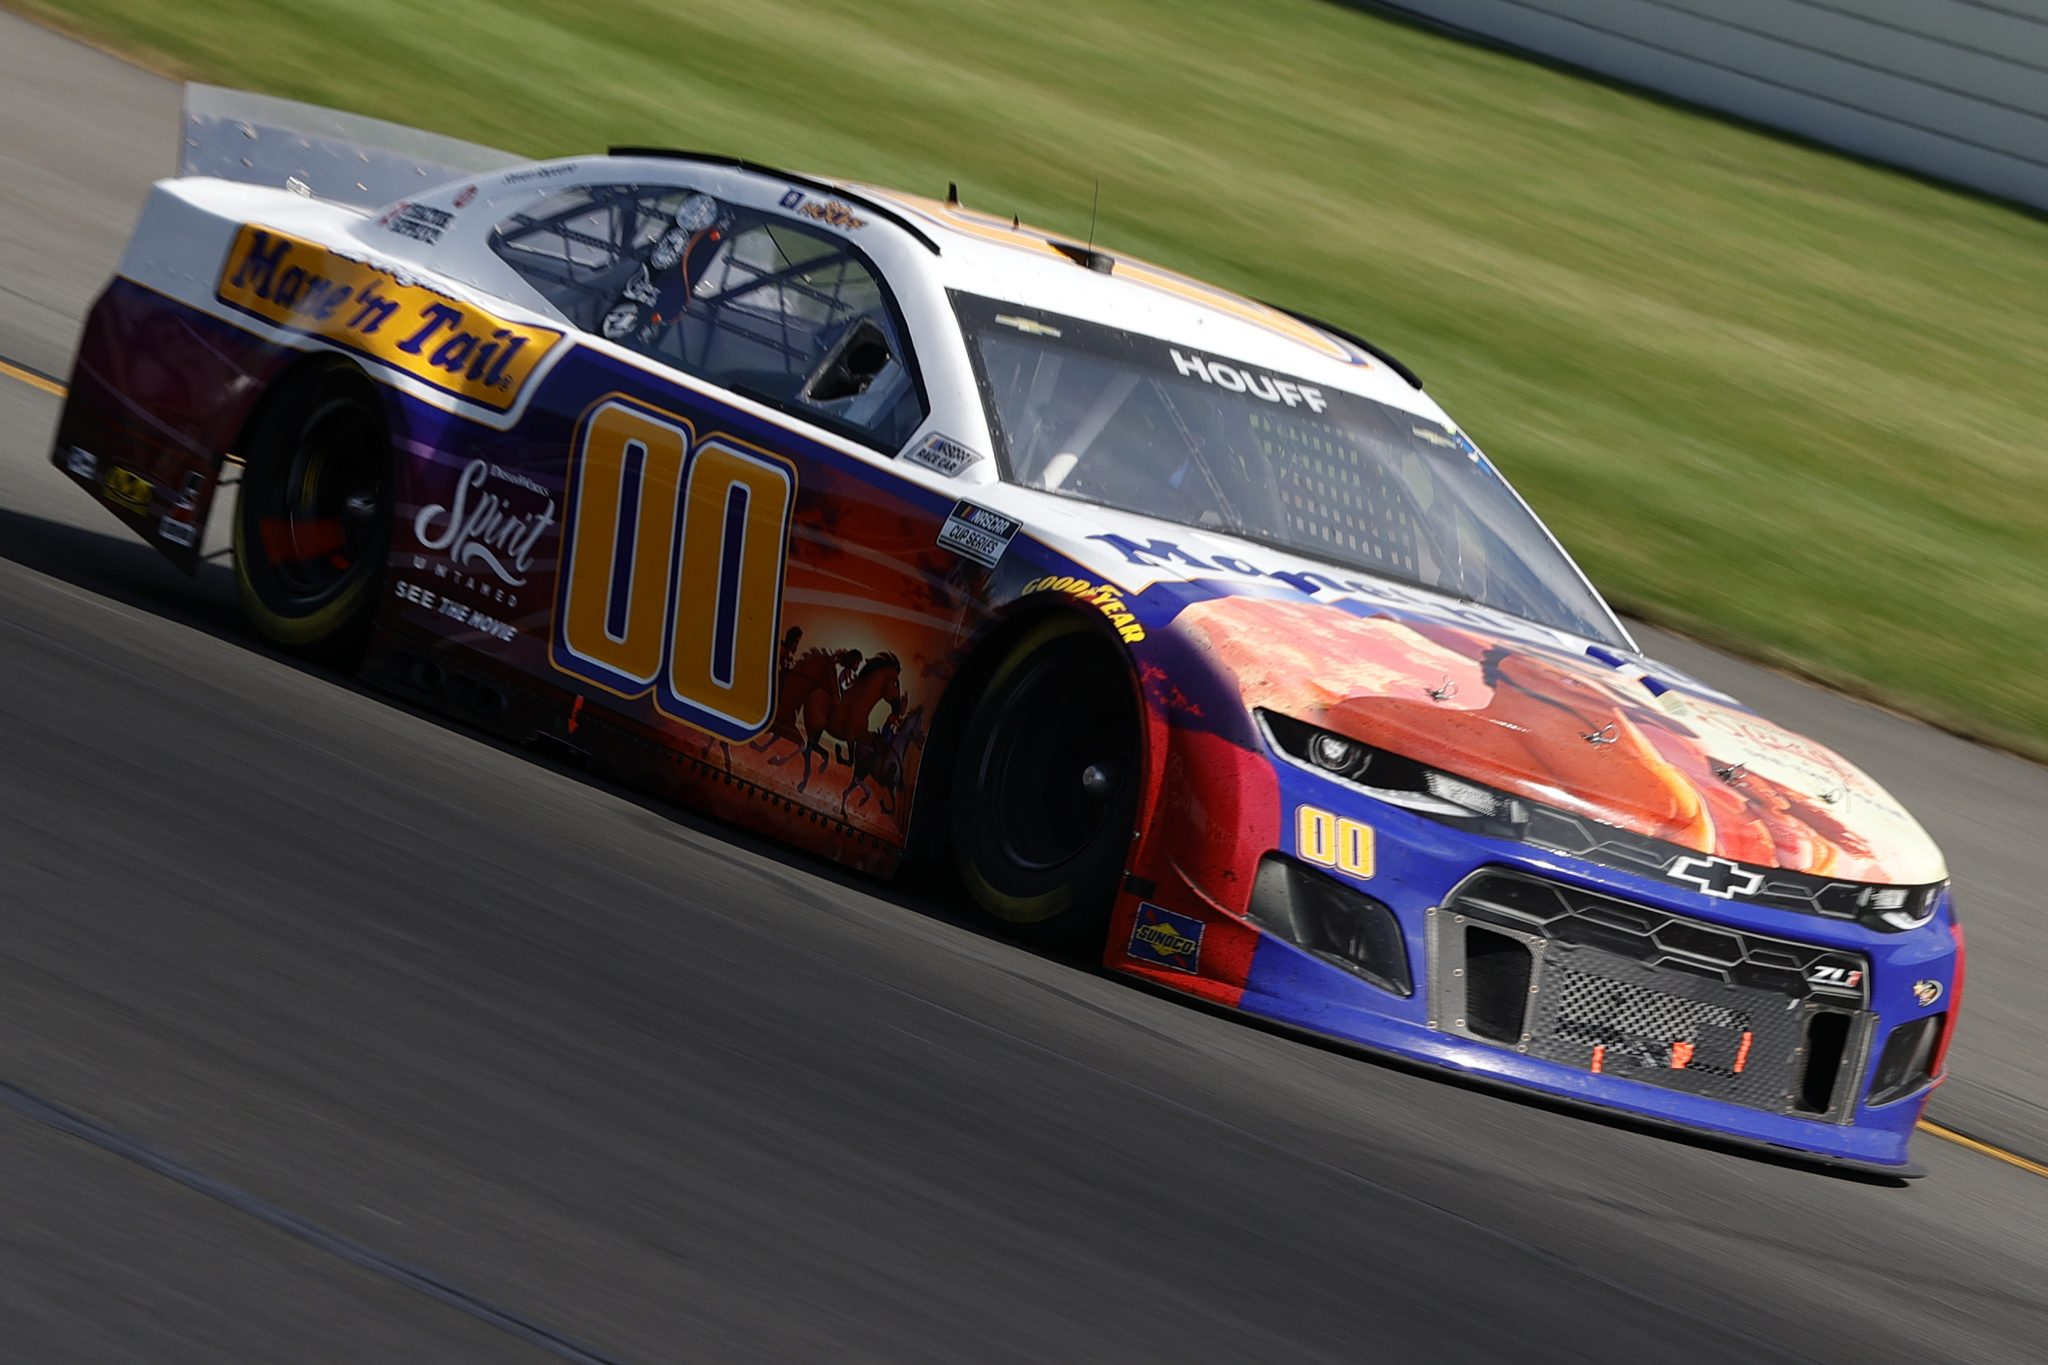 LONG POND, PENNSYLVANIA - JUNE 27: Quin Houff, driver of the #00 Mane 'n Tail/Spirit Unlimited Chevrolet, drives during the NASCAR Cup Series Explore the Pocono Mountains 350 at Pocono Raceway on June 27, 2021 in Long Pond, Pennsylvania. (Photo by Tim Nwachukwu/Getty Images) | Getty Images